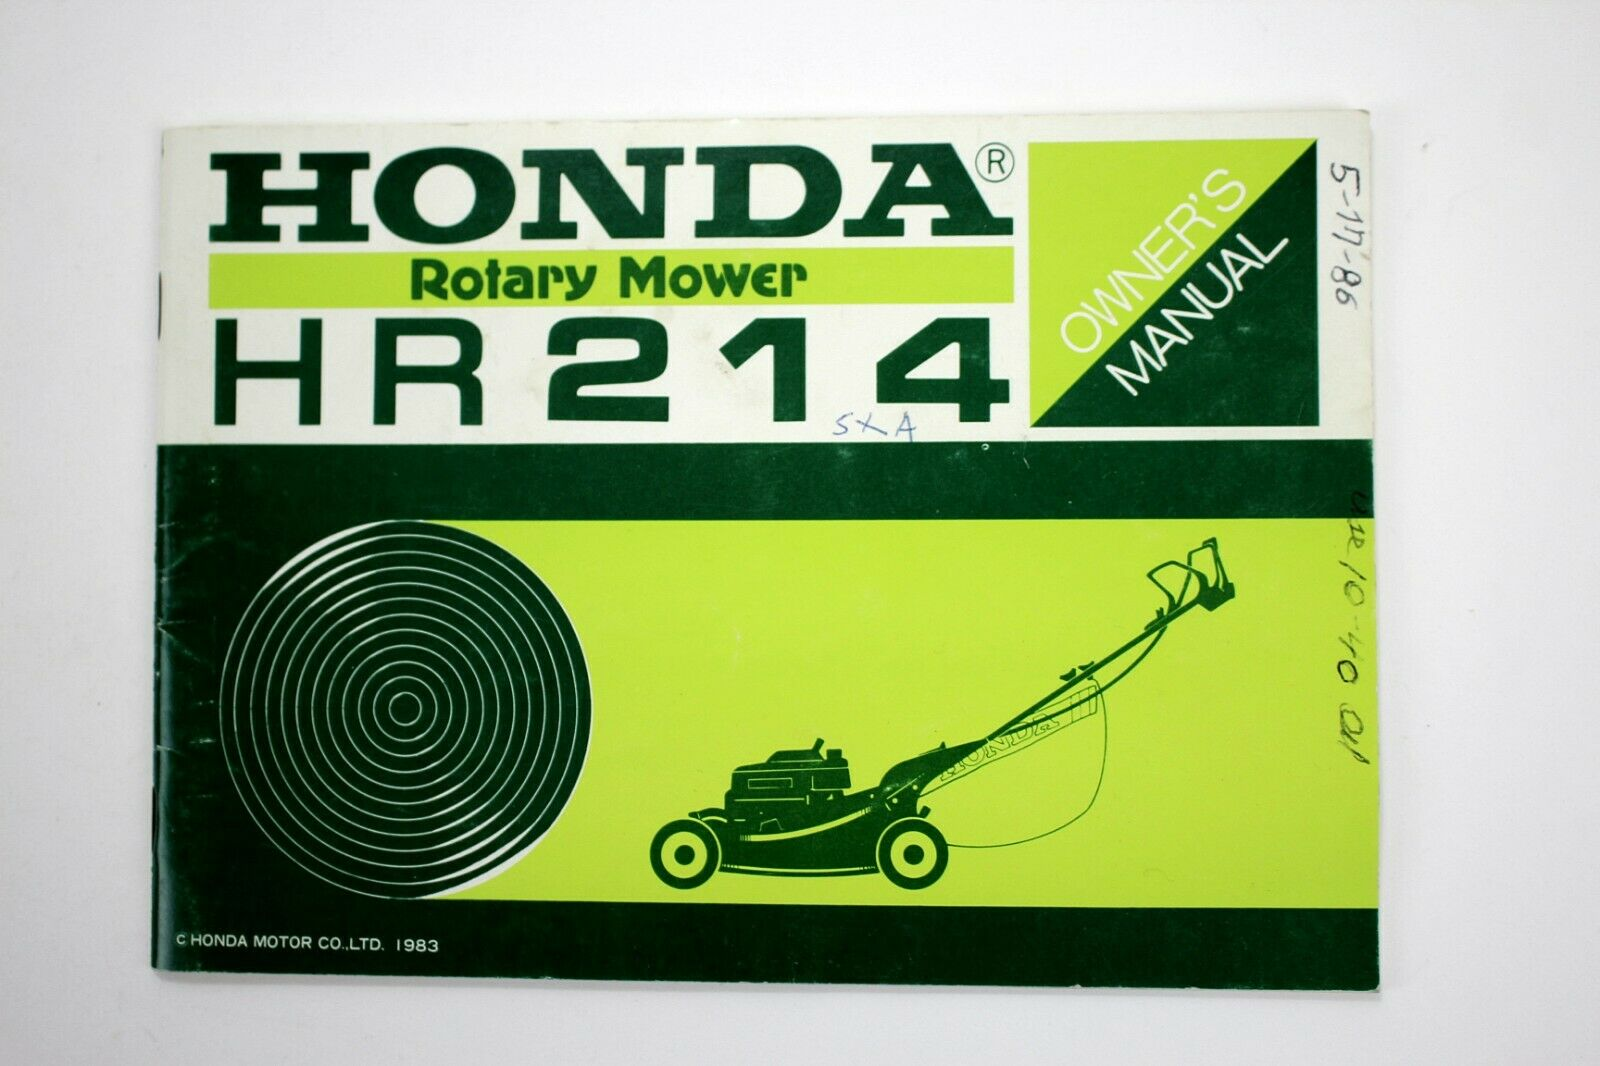 Honda Rotary Mower HR214 Owner's Manual 1983